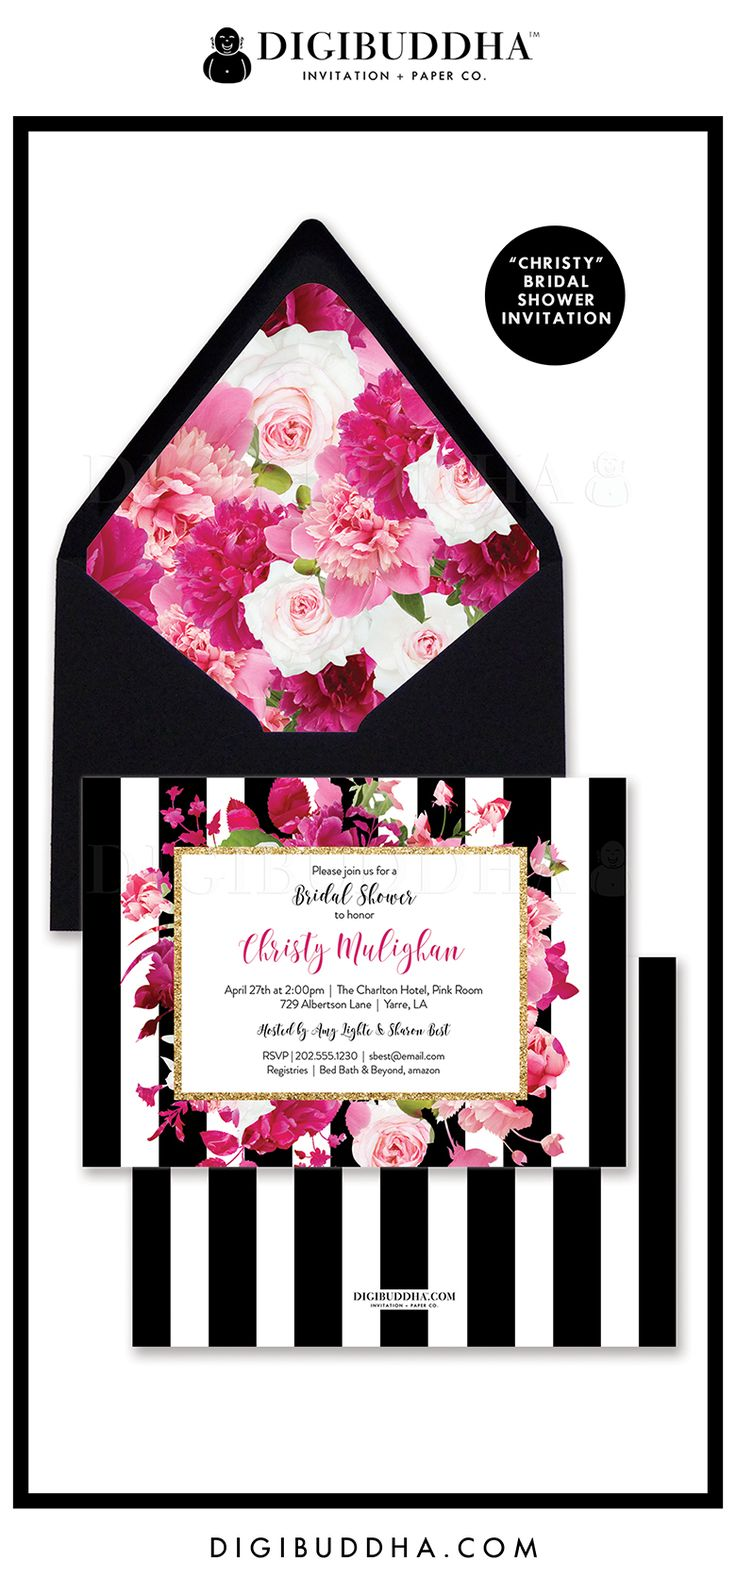 "Bridal Shower Invitation, ""Christy"" style with a gorgeous classic black and white stripe pattern overlaid with florals in lush shades of pink.  Modern calligraphy, black envelope & floral envelope liner also available, at digibuddha.com"